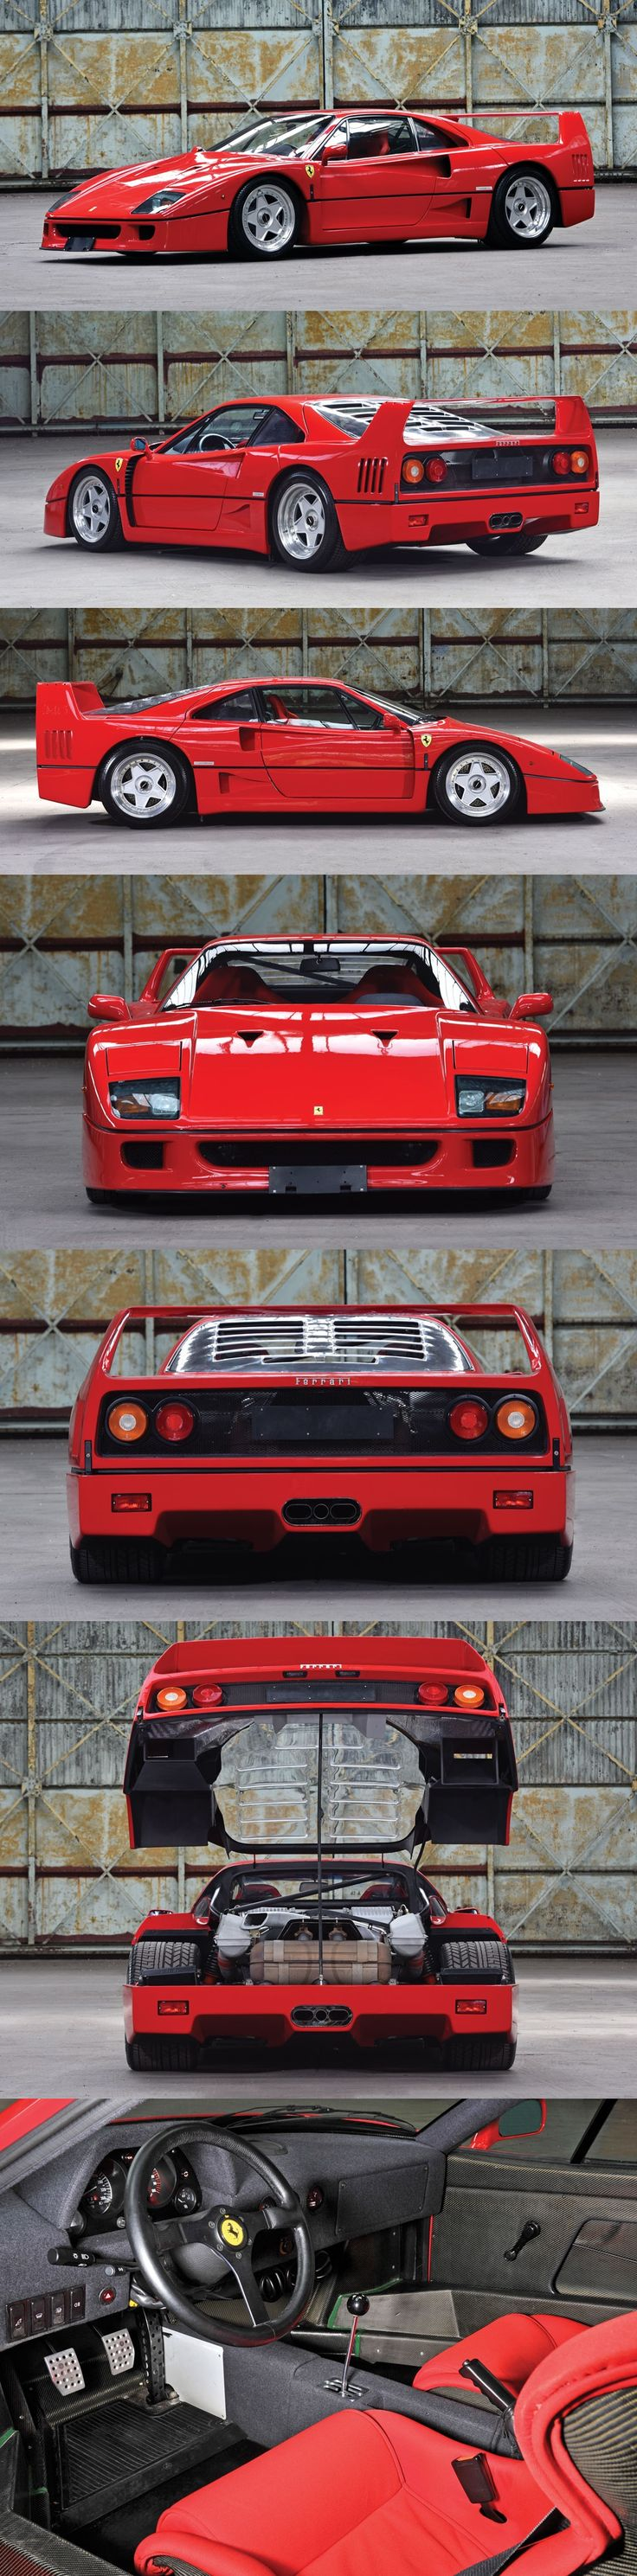 best 20 ferrari f40 ideas on pinterest ferrari driving. Black Bedroom Furniture Sets. Home Design Ideas